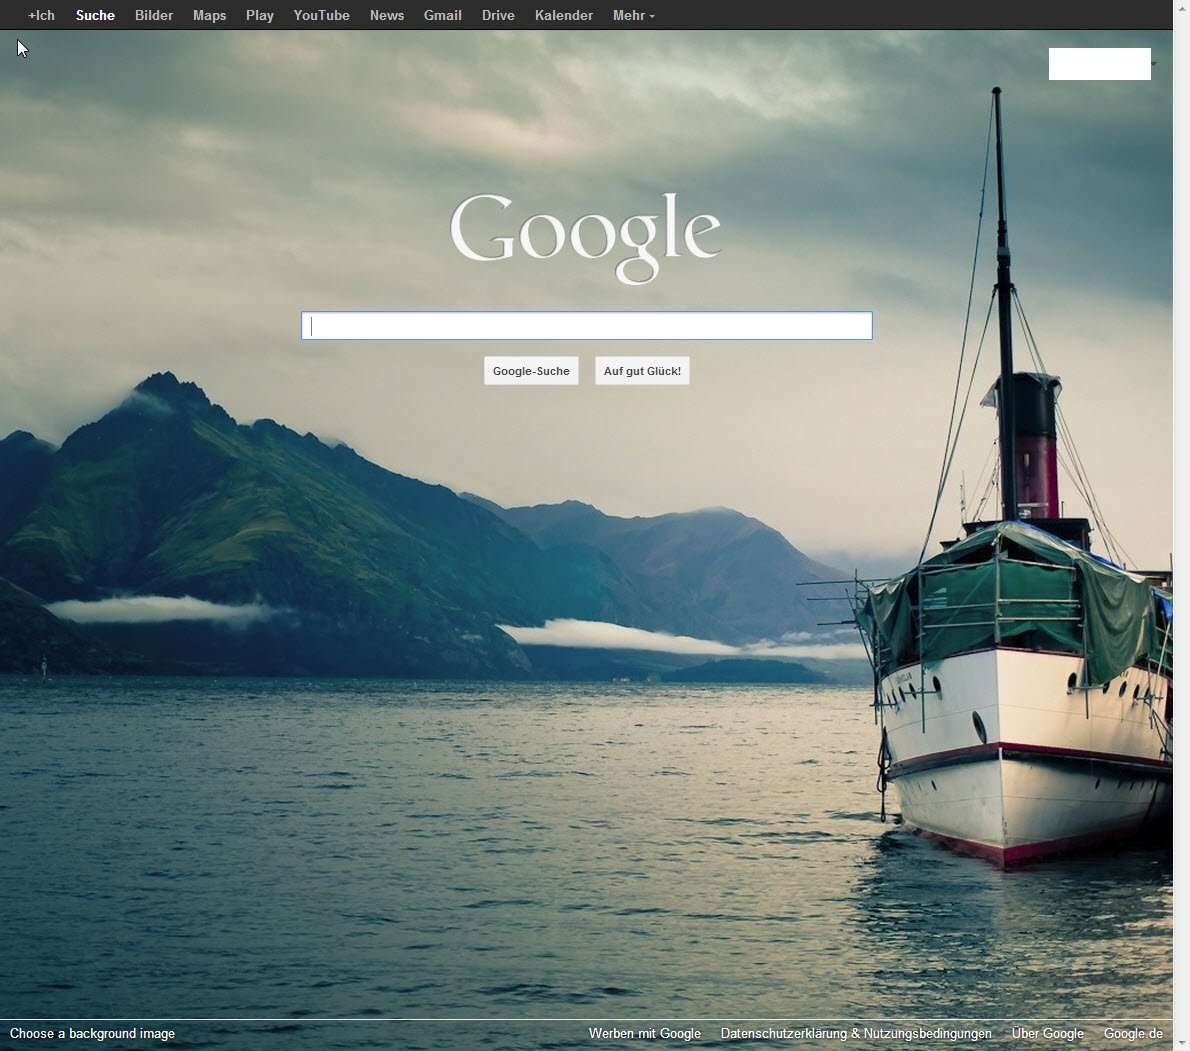 Get your Google homepage background image back   gHacks Tech News 1190x1051